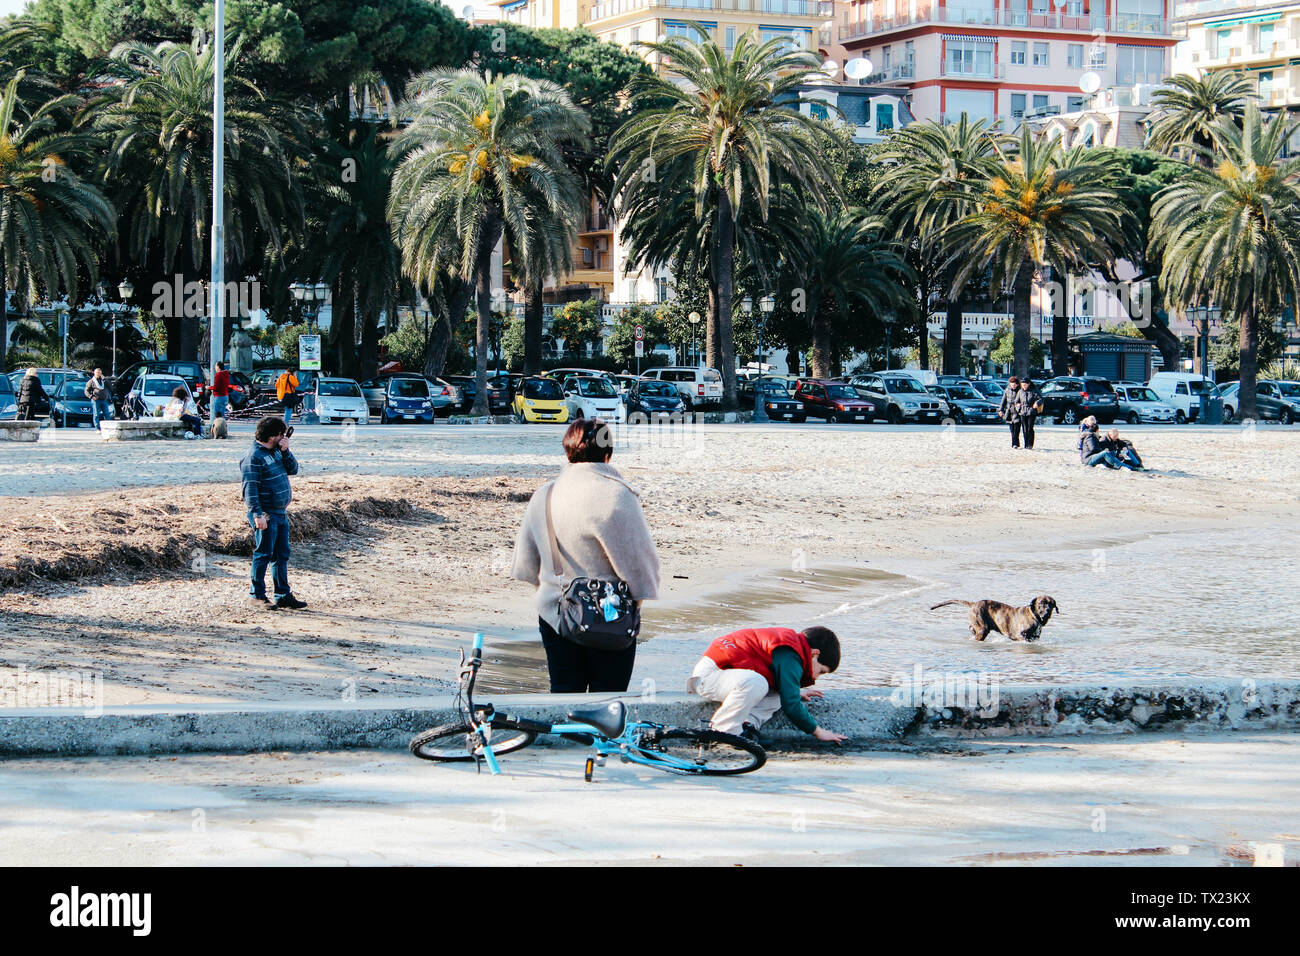 Rapallo, Italy - 03 27 2013: People on the beach. View of the streets of Rapallo - Stock Image